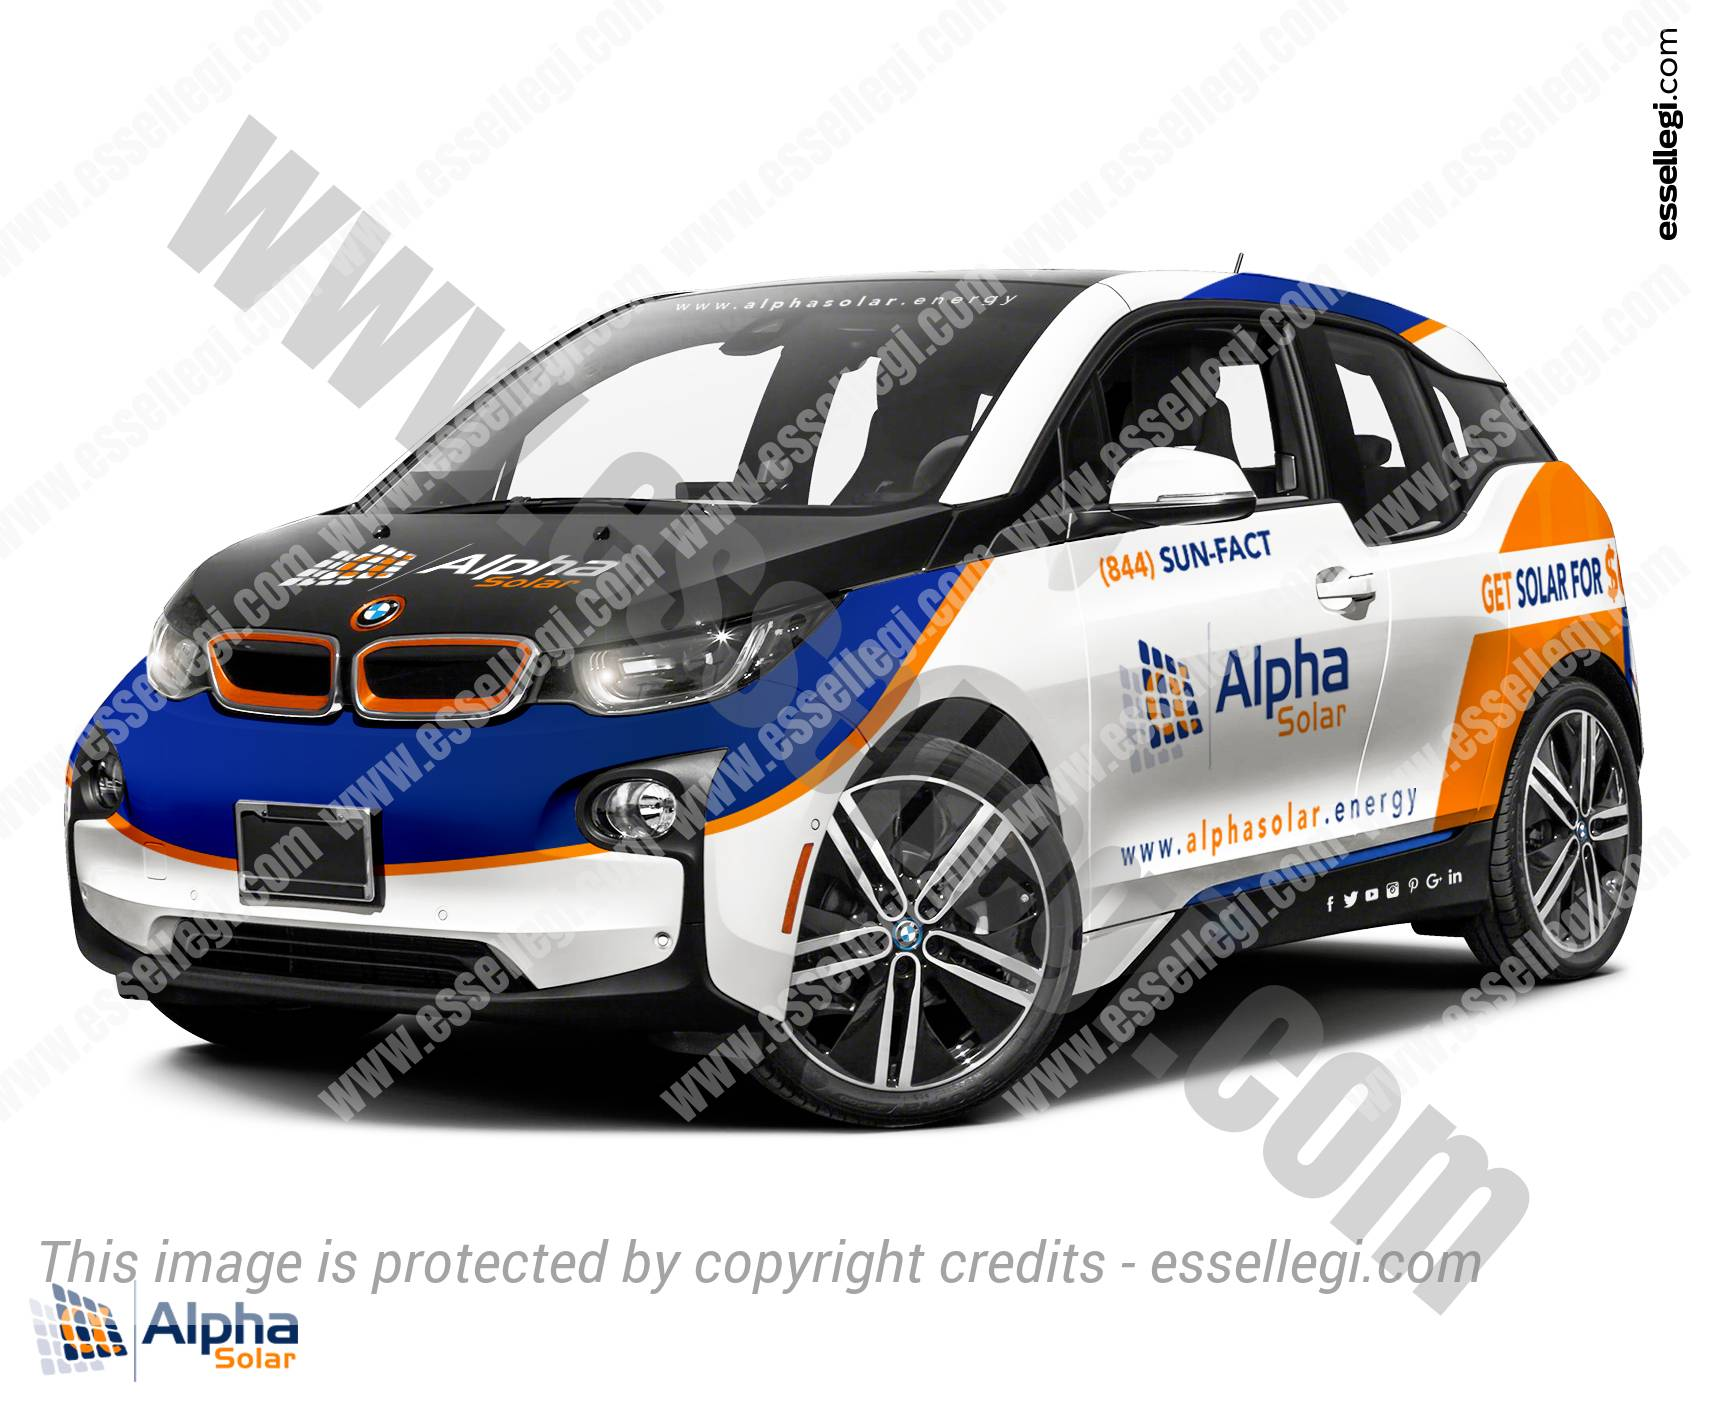 BMW i3 | Car Wrap Design by Essellegi. Car Signs, Car Signage, Car Signwriting, Car Wrap Designer, Car Wrap Design by Essellegi.